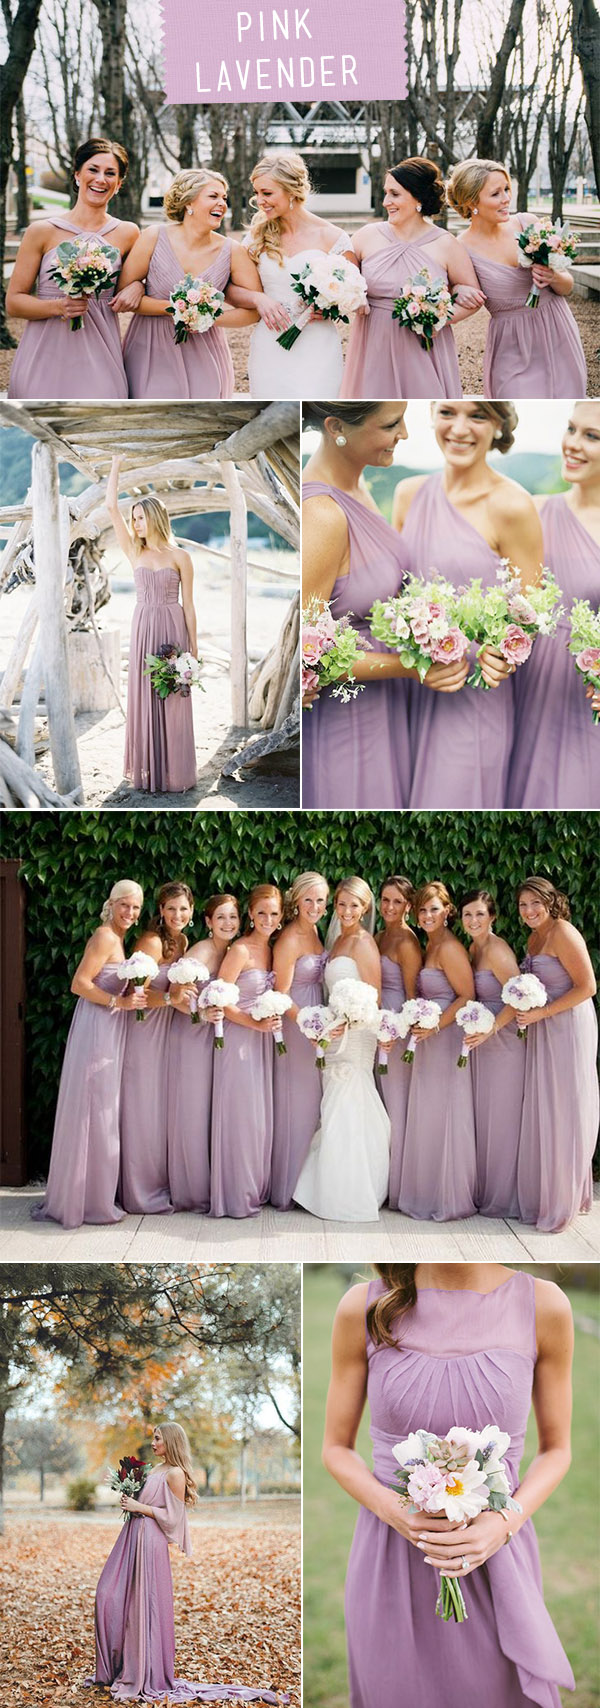 Pink Lavender Bridesmaid dresses for 2018 Wedding Trends